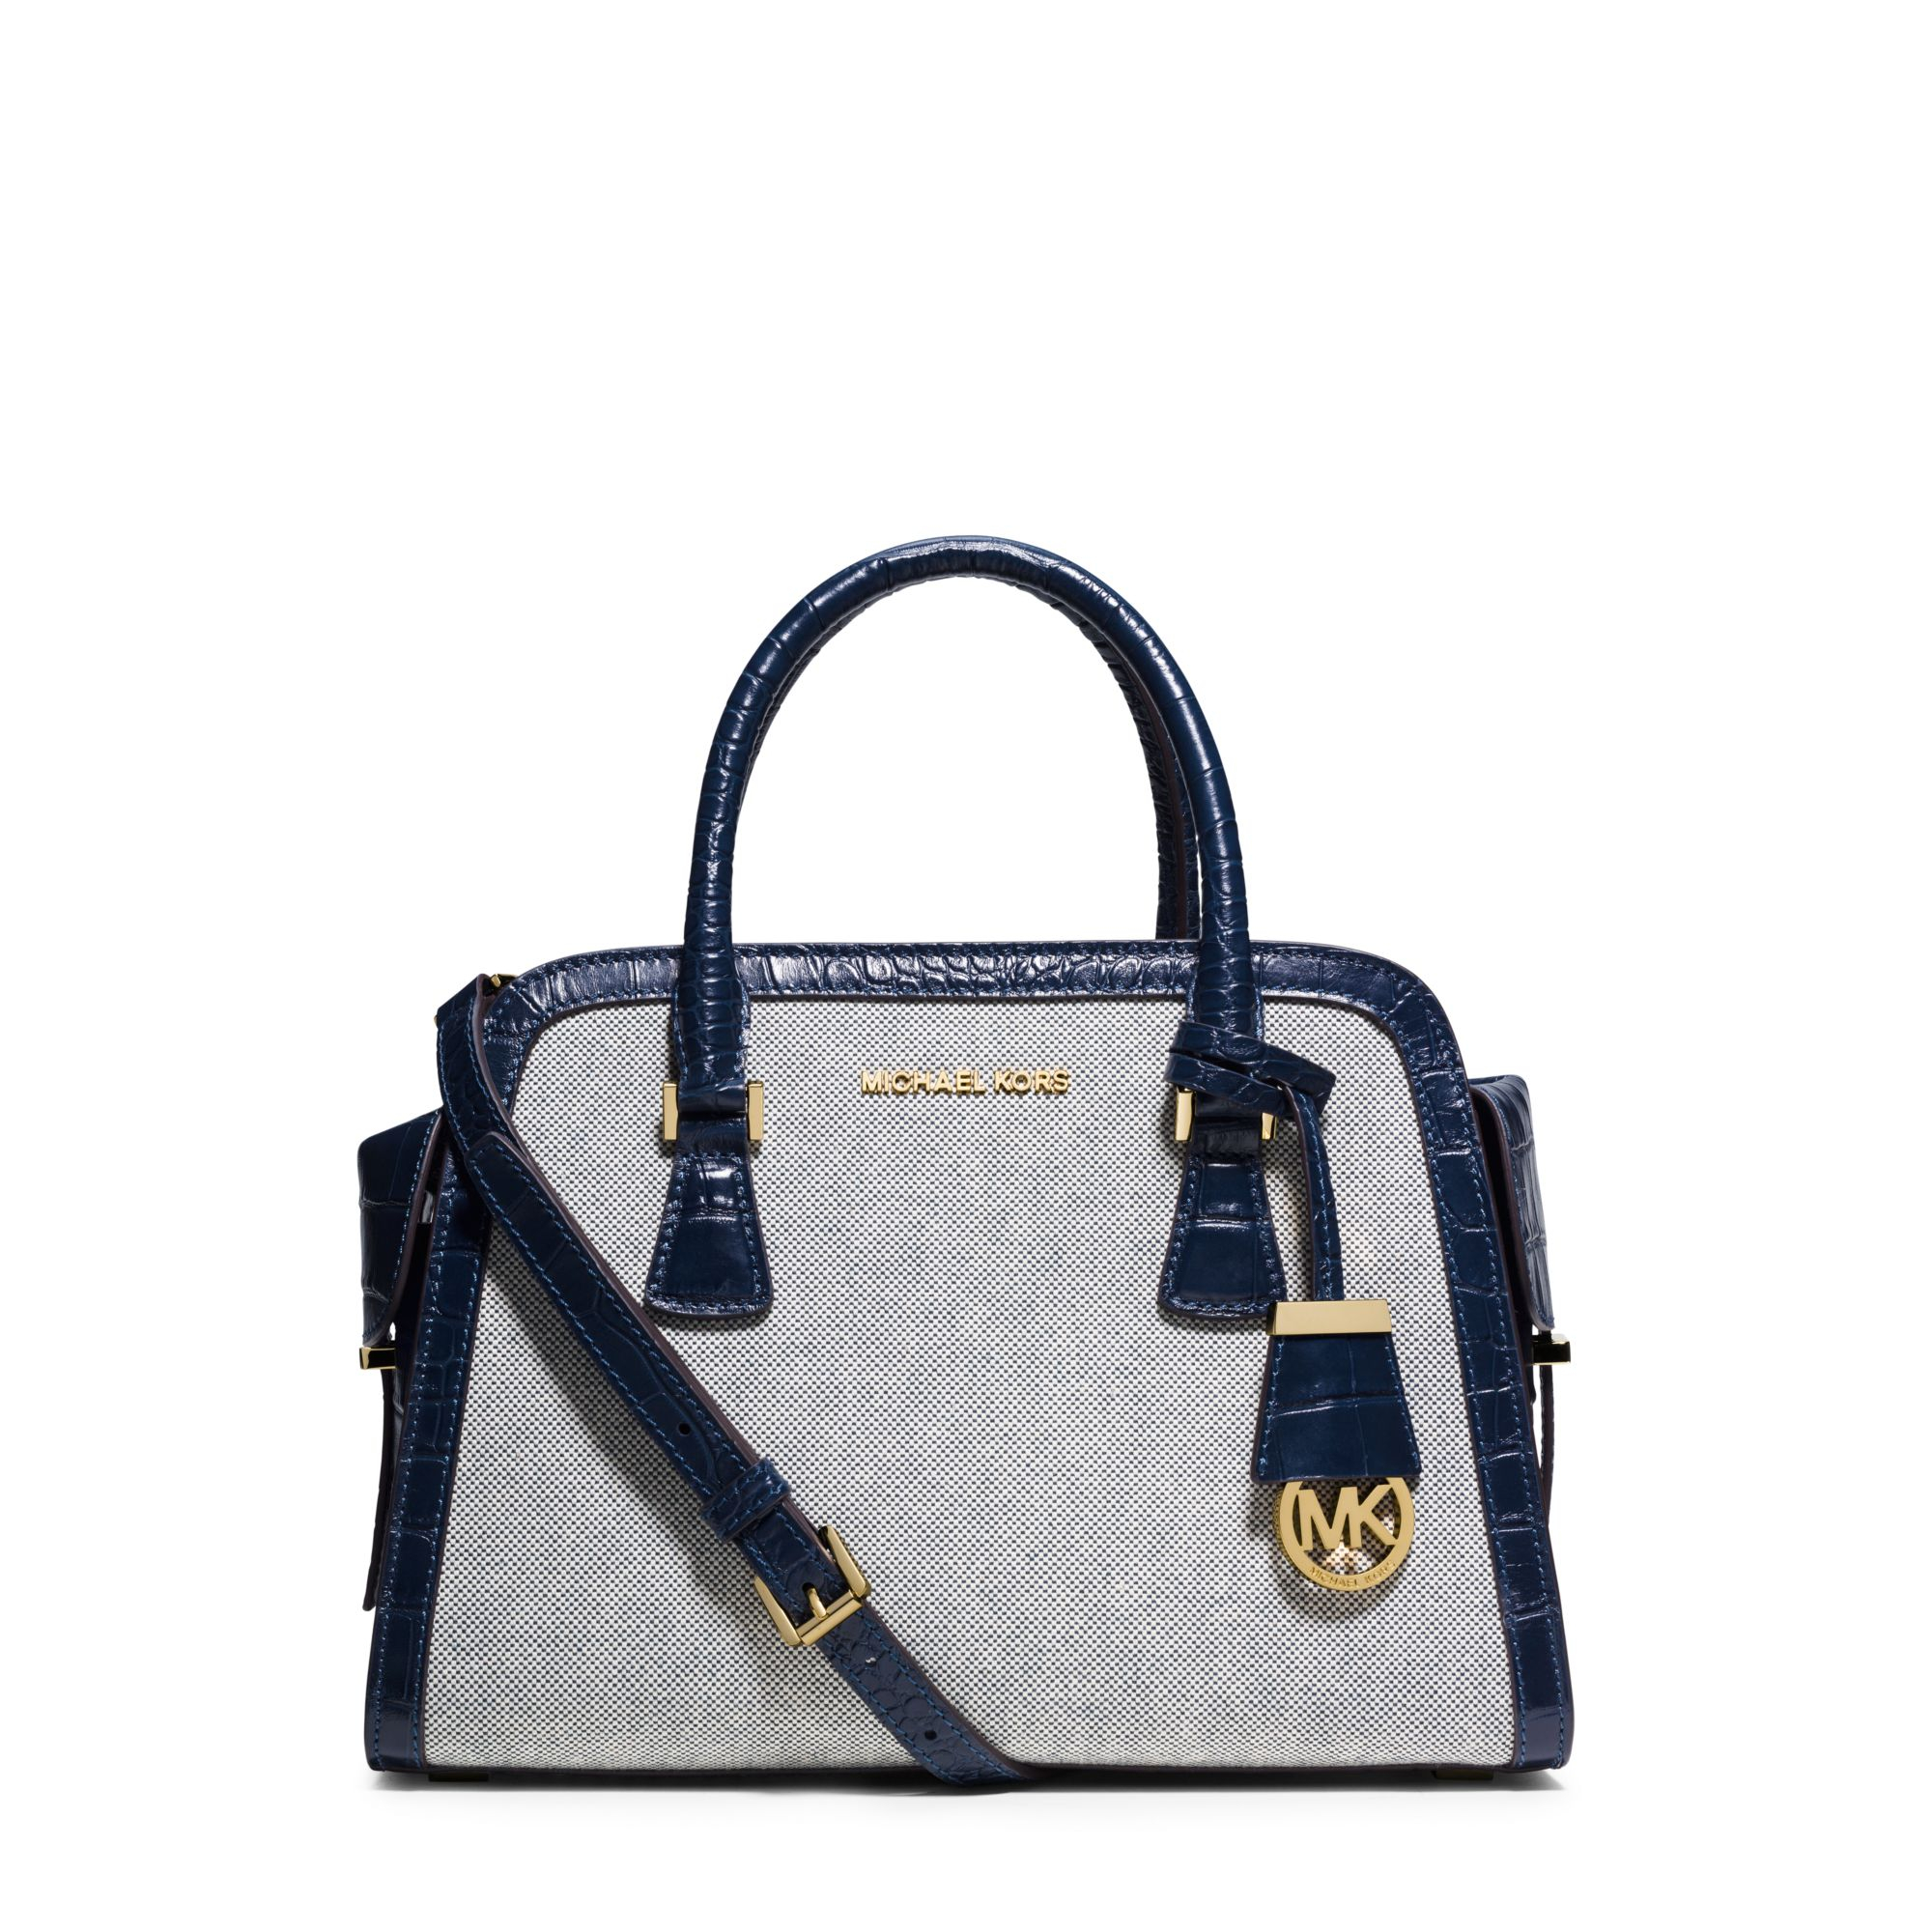 9e938be951fc Lyst - Michael Kors Harper Medium Two-tone Canvas Satchel in Blue